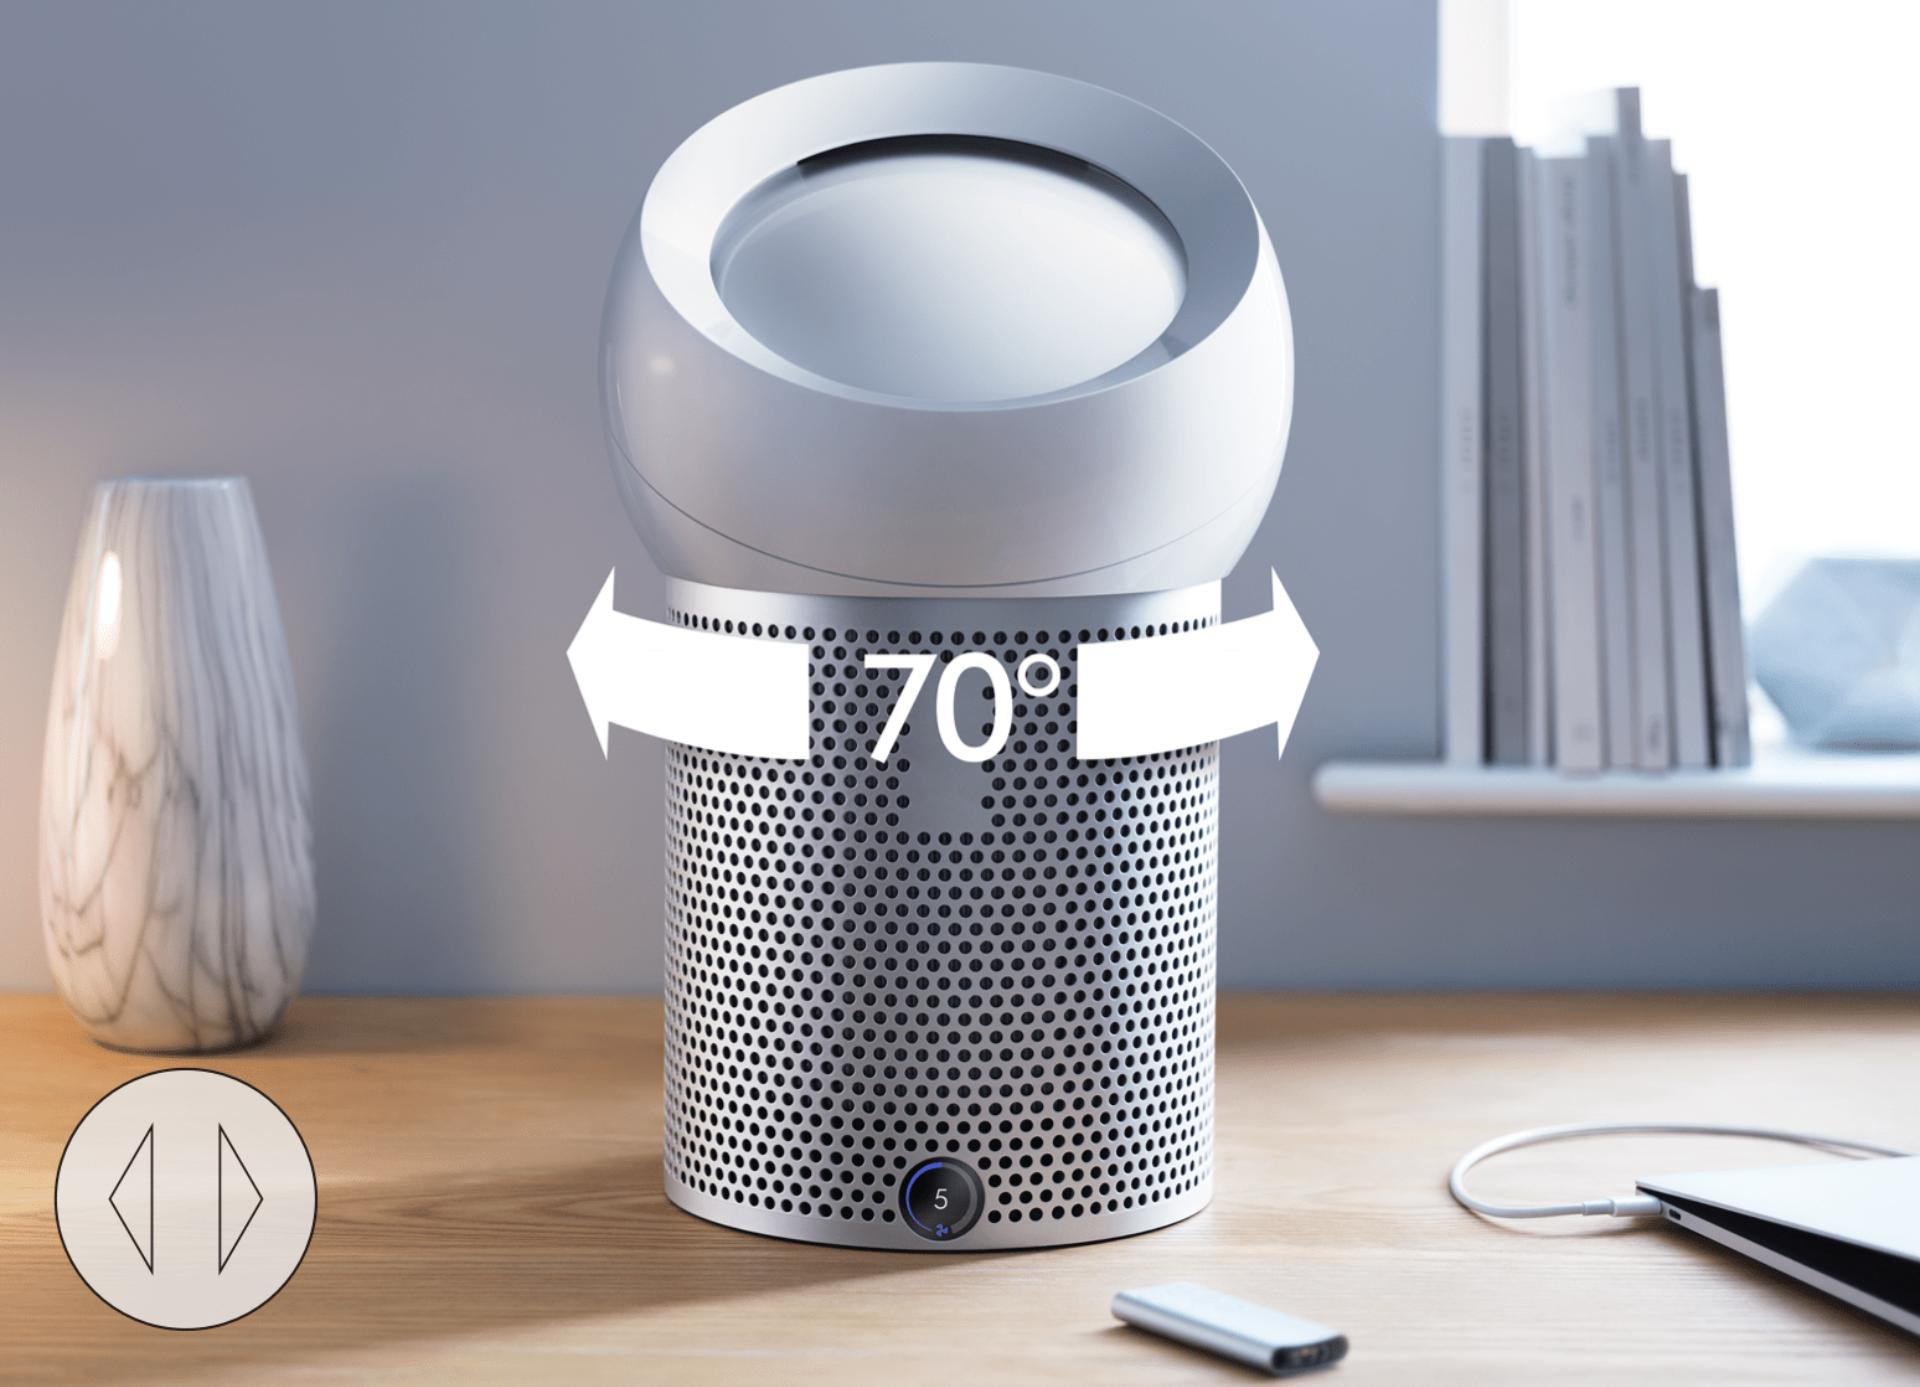 Dyson Pure Cool Me™ 70˚ oscillation